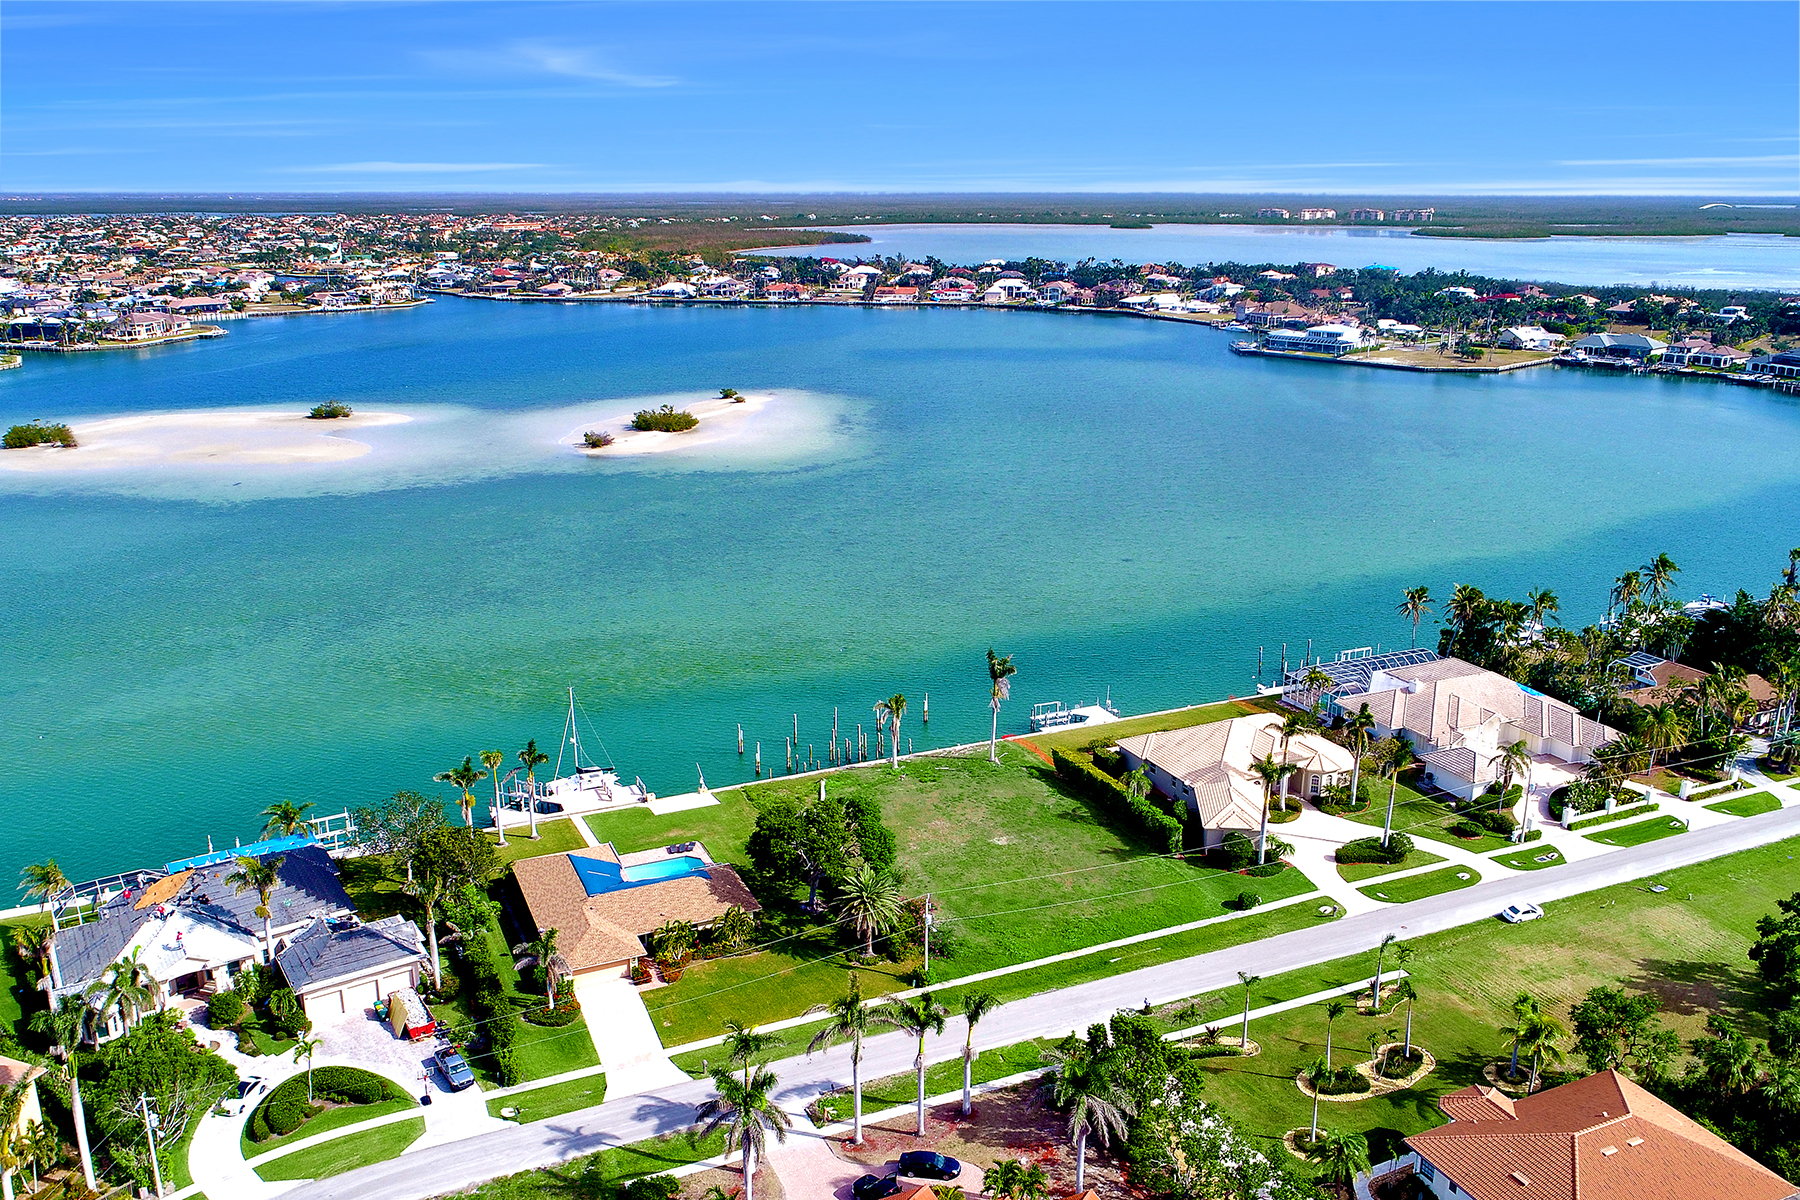 Land for Sale at MARCO ISLAND 1620 Copeland Dr, Marco Island, Florida 34145 United States